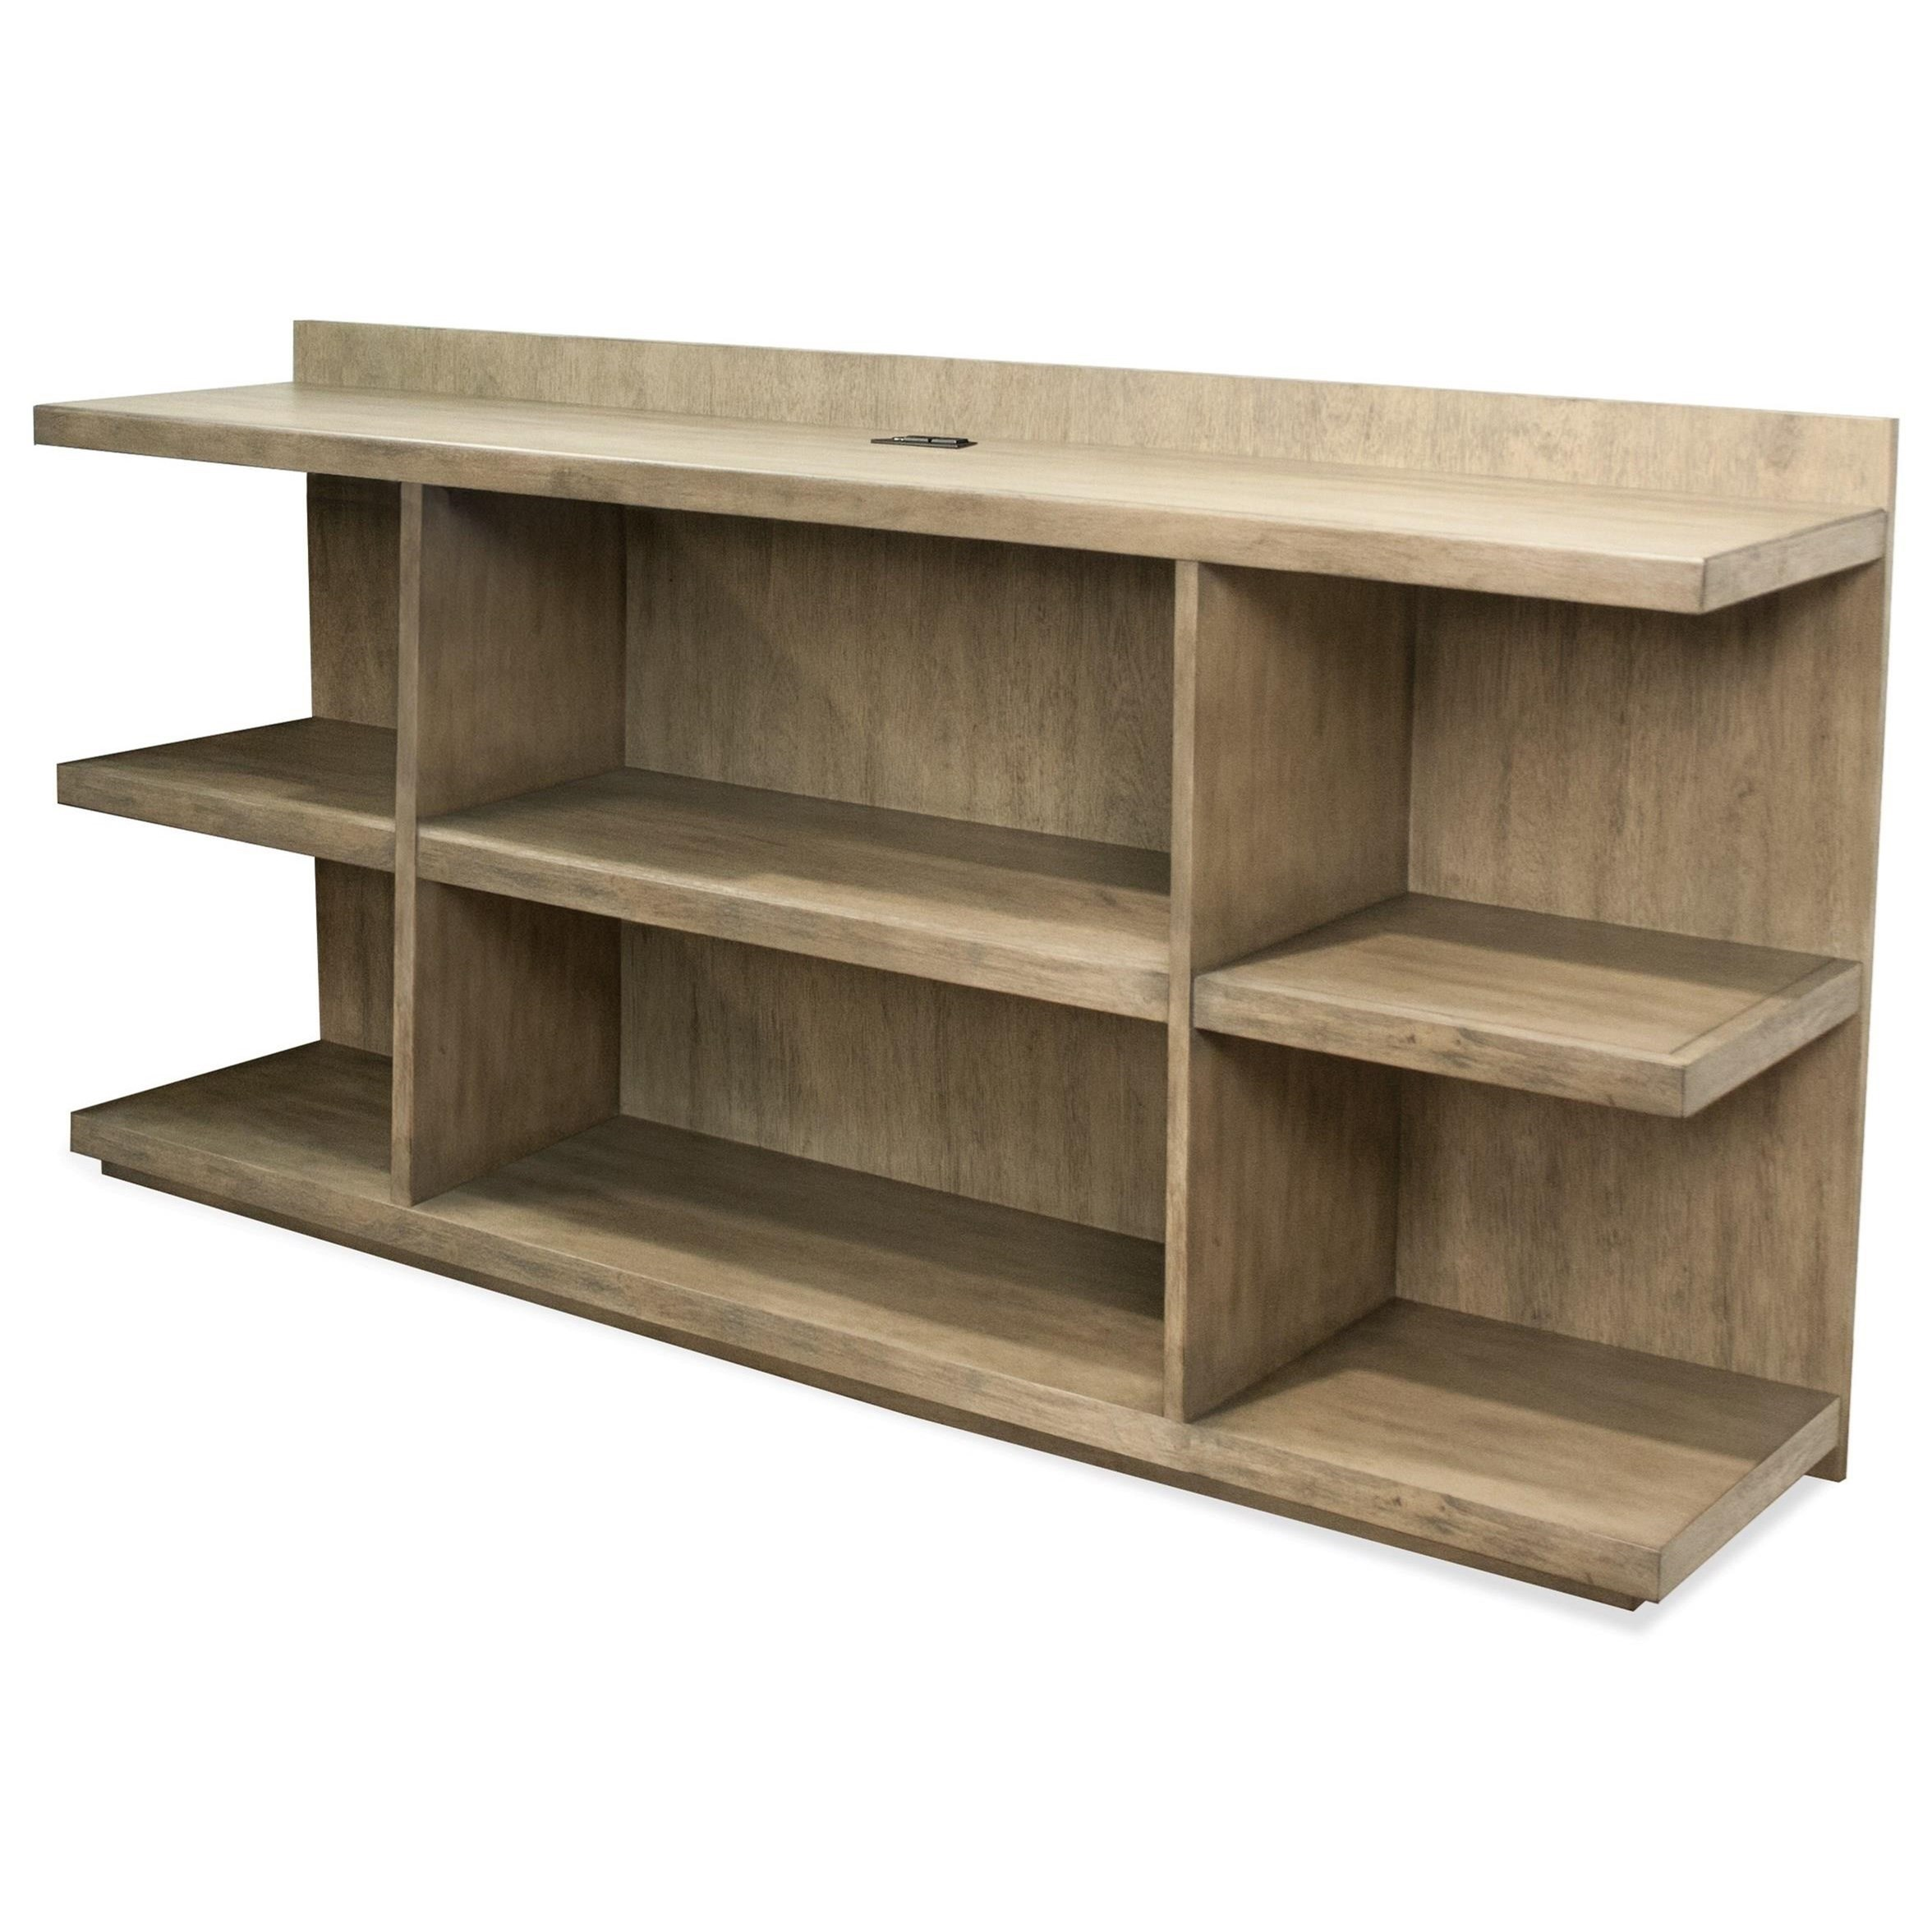 Genial Riverside Furniture Perspectives Peninsula Bookcase Desk With Outlet Bar In  Top Panel